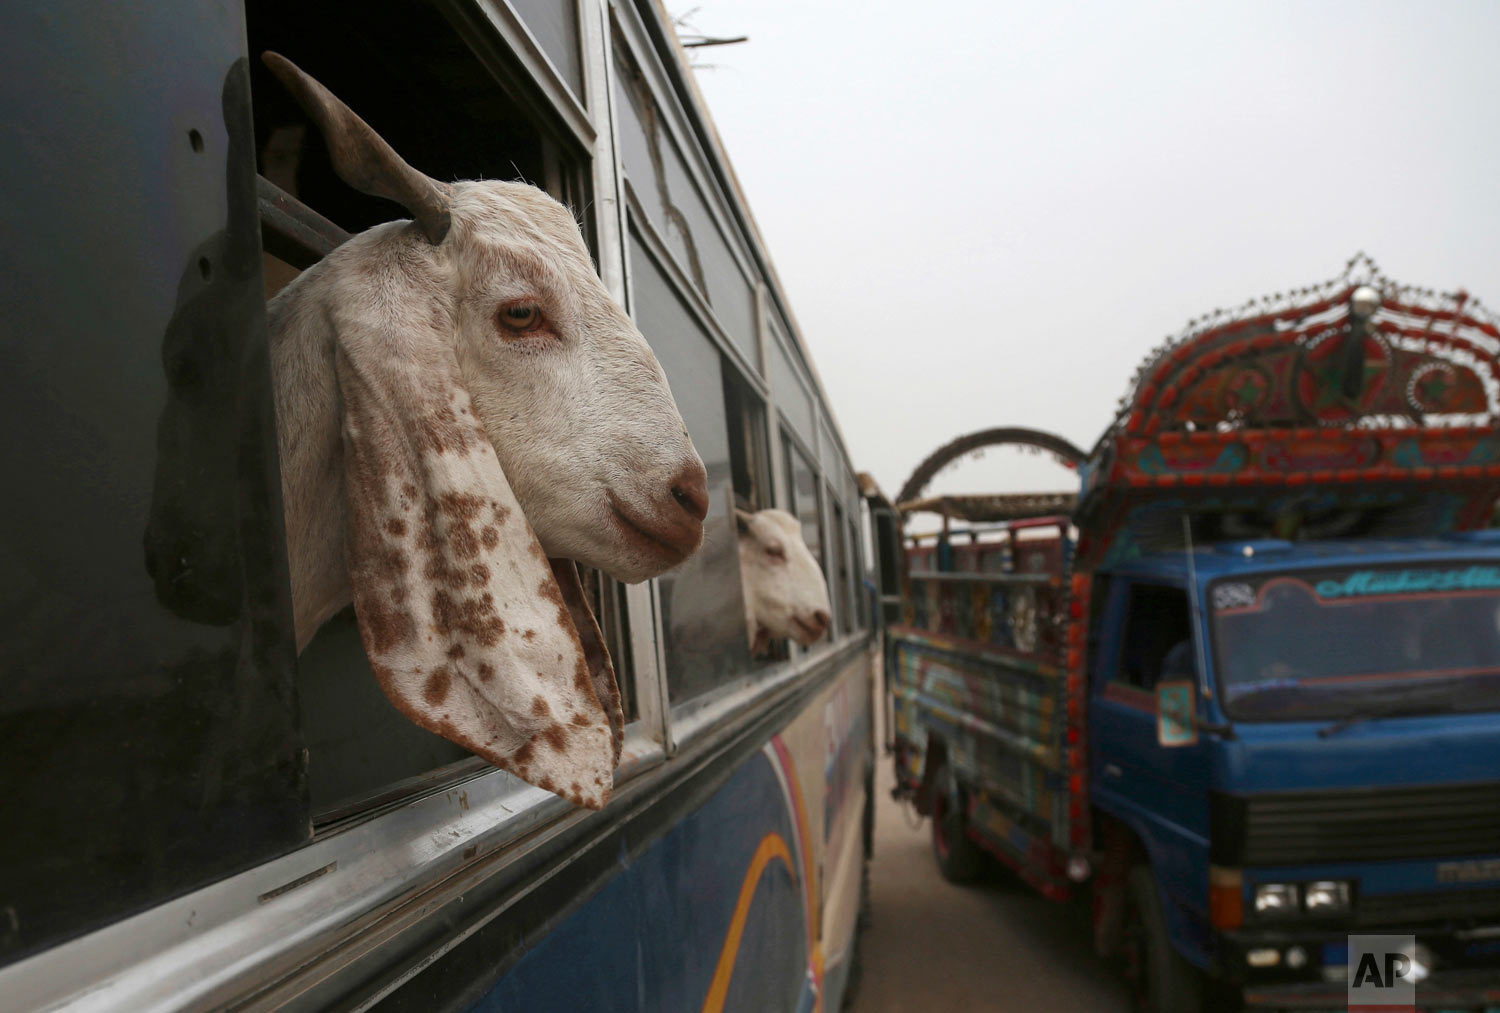 Vendors bring their animals to a cattle market set up for the upcoming Muslim festival Eid al-Adha in Karachi, Pakistan, Friday, Aug. 17, 2018. Eid al-Adha, or Feast of Sacrifice, the most important Islamic holiday, marks the willingness of the Prophet Ibrahim (Abraham to Christians and Jews) to sacrifice his son. (AP Photo/Shakil Adil)